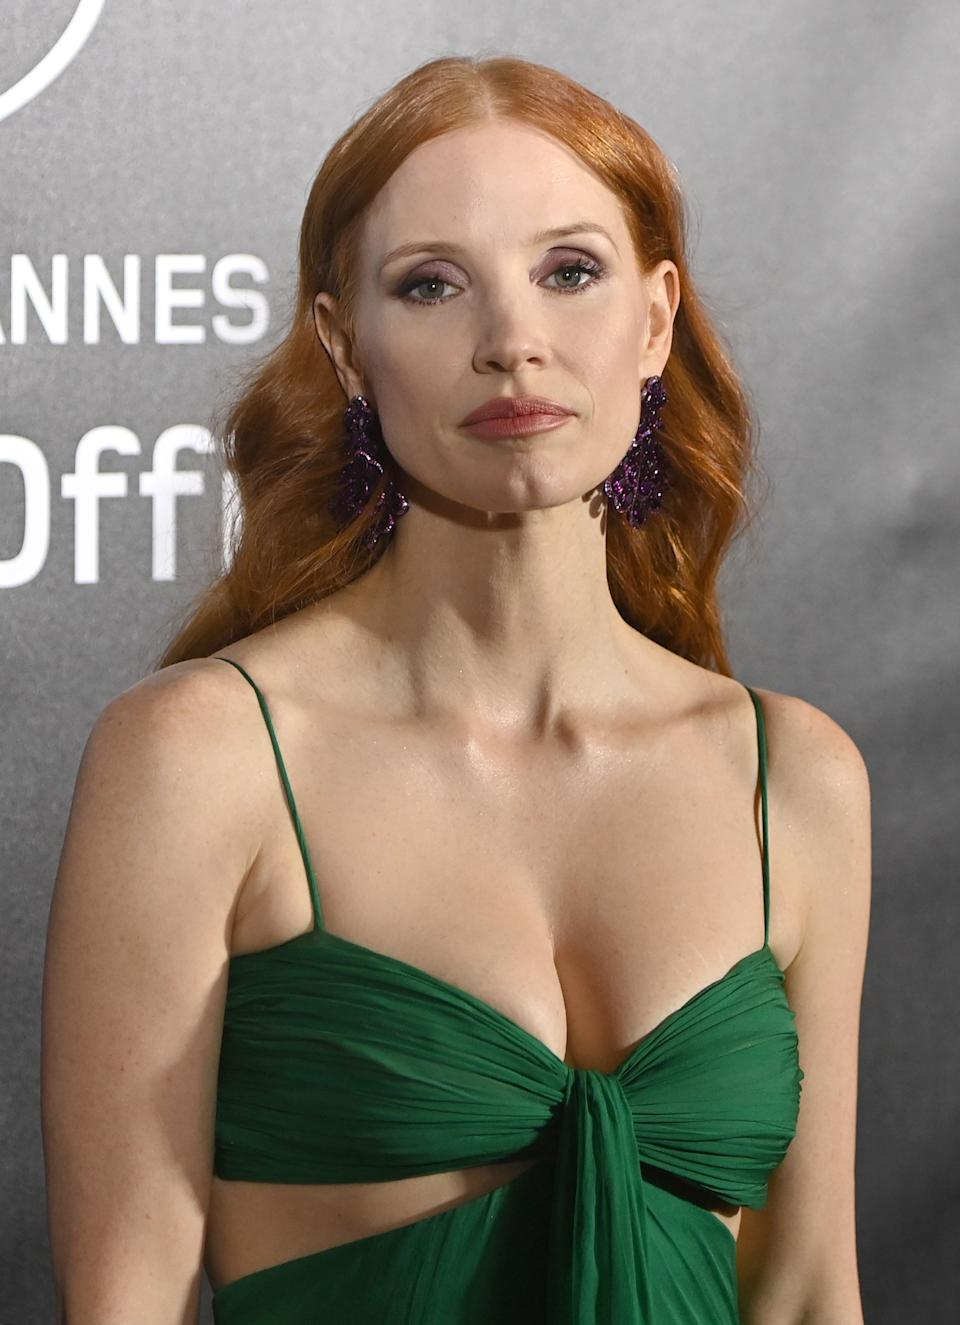 CANNES, FRANCE - JULY 09: Jessica Chastain attends the photocall ahead of the Chopard Trophy dinner during the 74th annual Cannes Film Festival on July 09, 2021 in Cannes, France. (Photo by Kate Green/Getty Images)